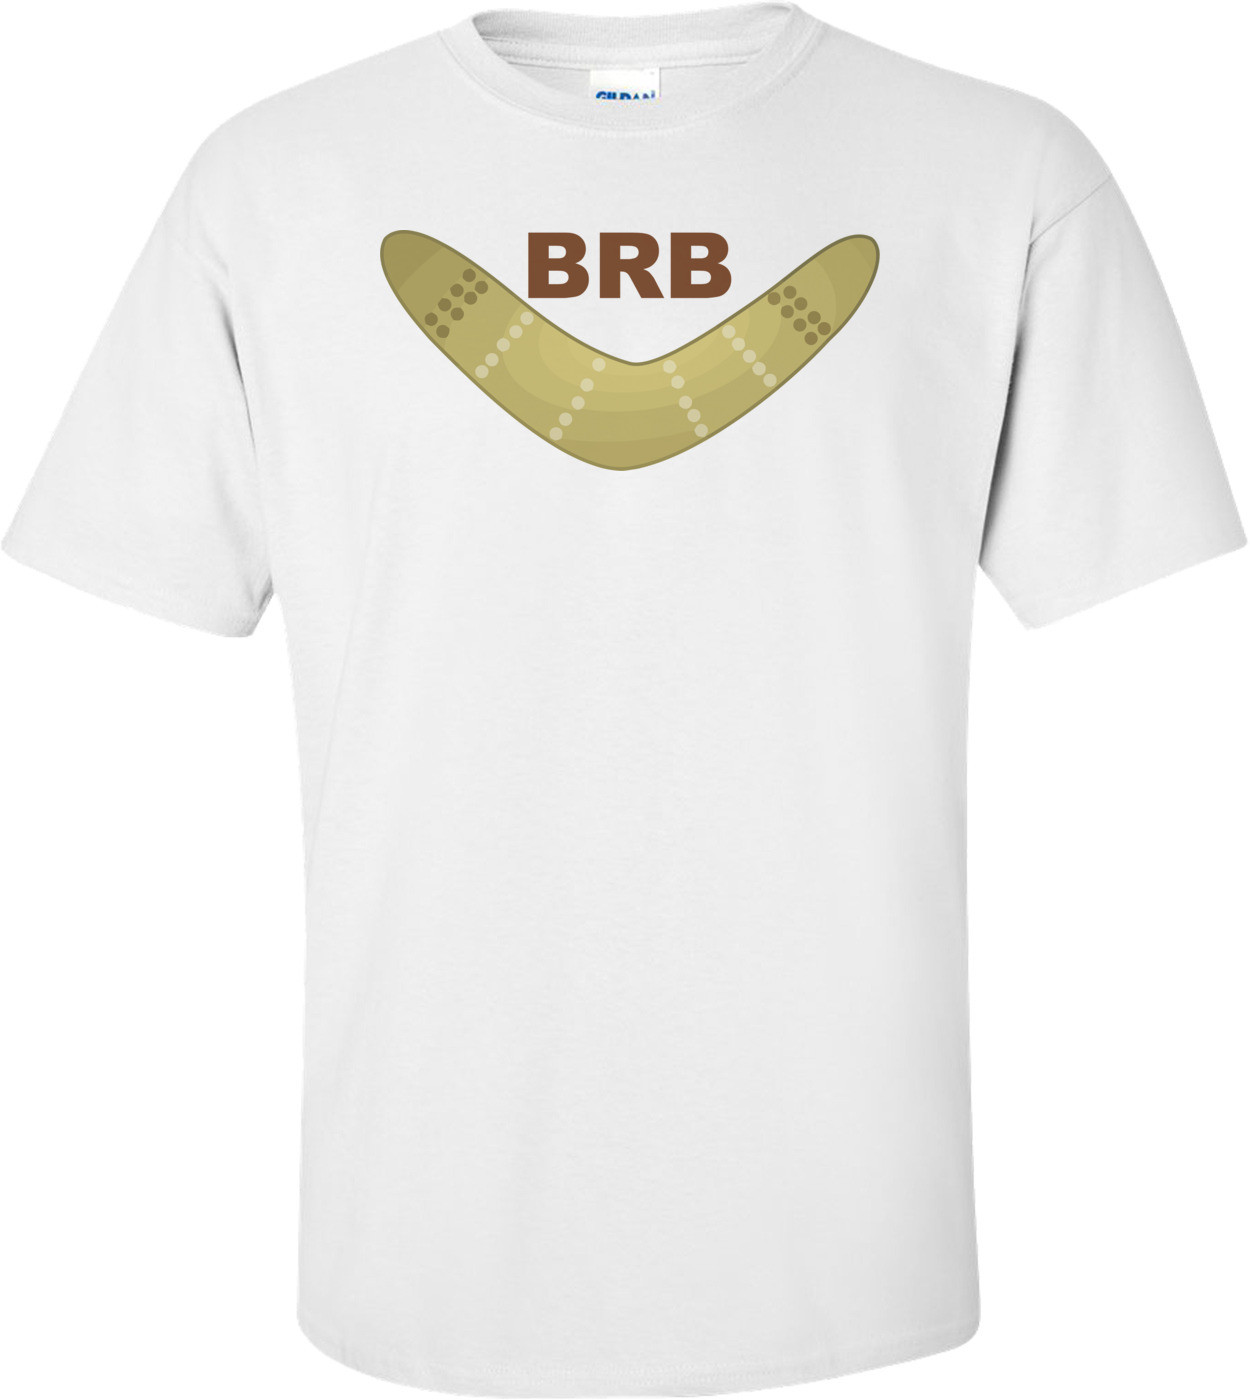 Brb Boomerang Funny Tee